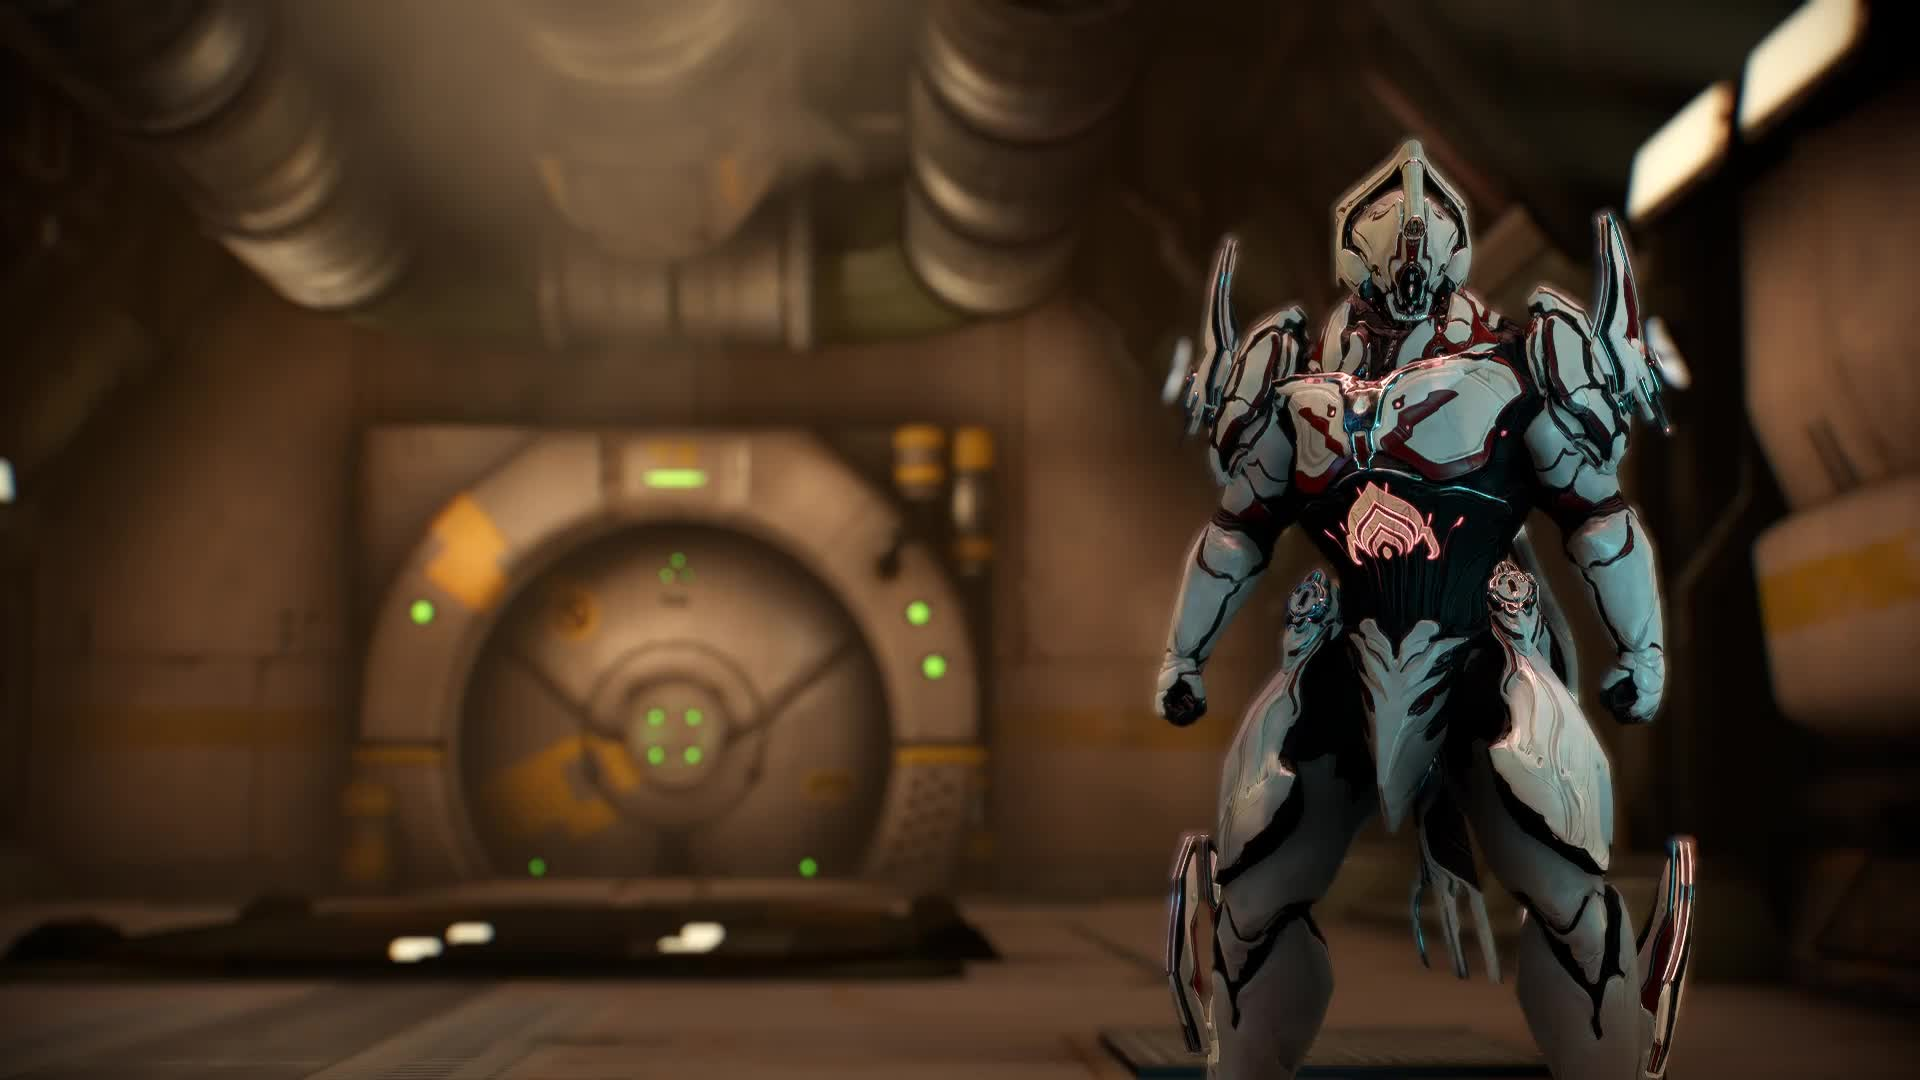 Warframe Rhino Idle - живые обои